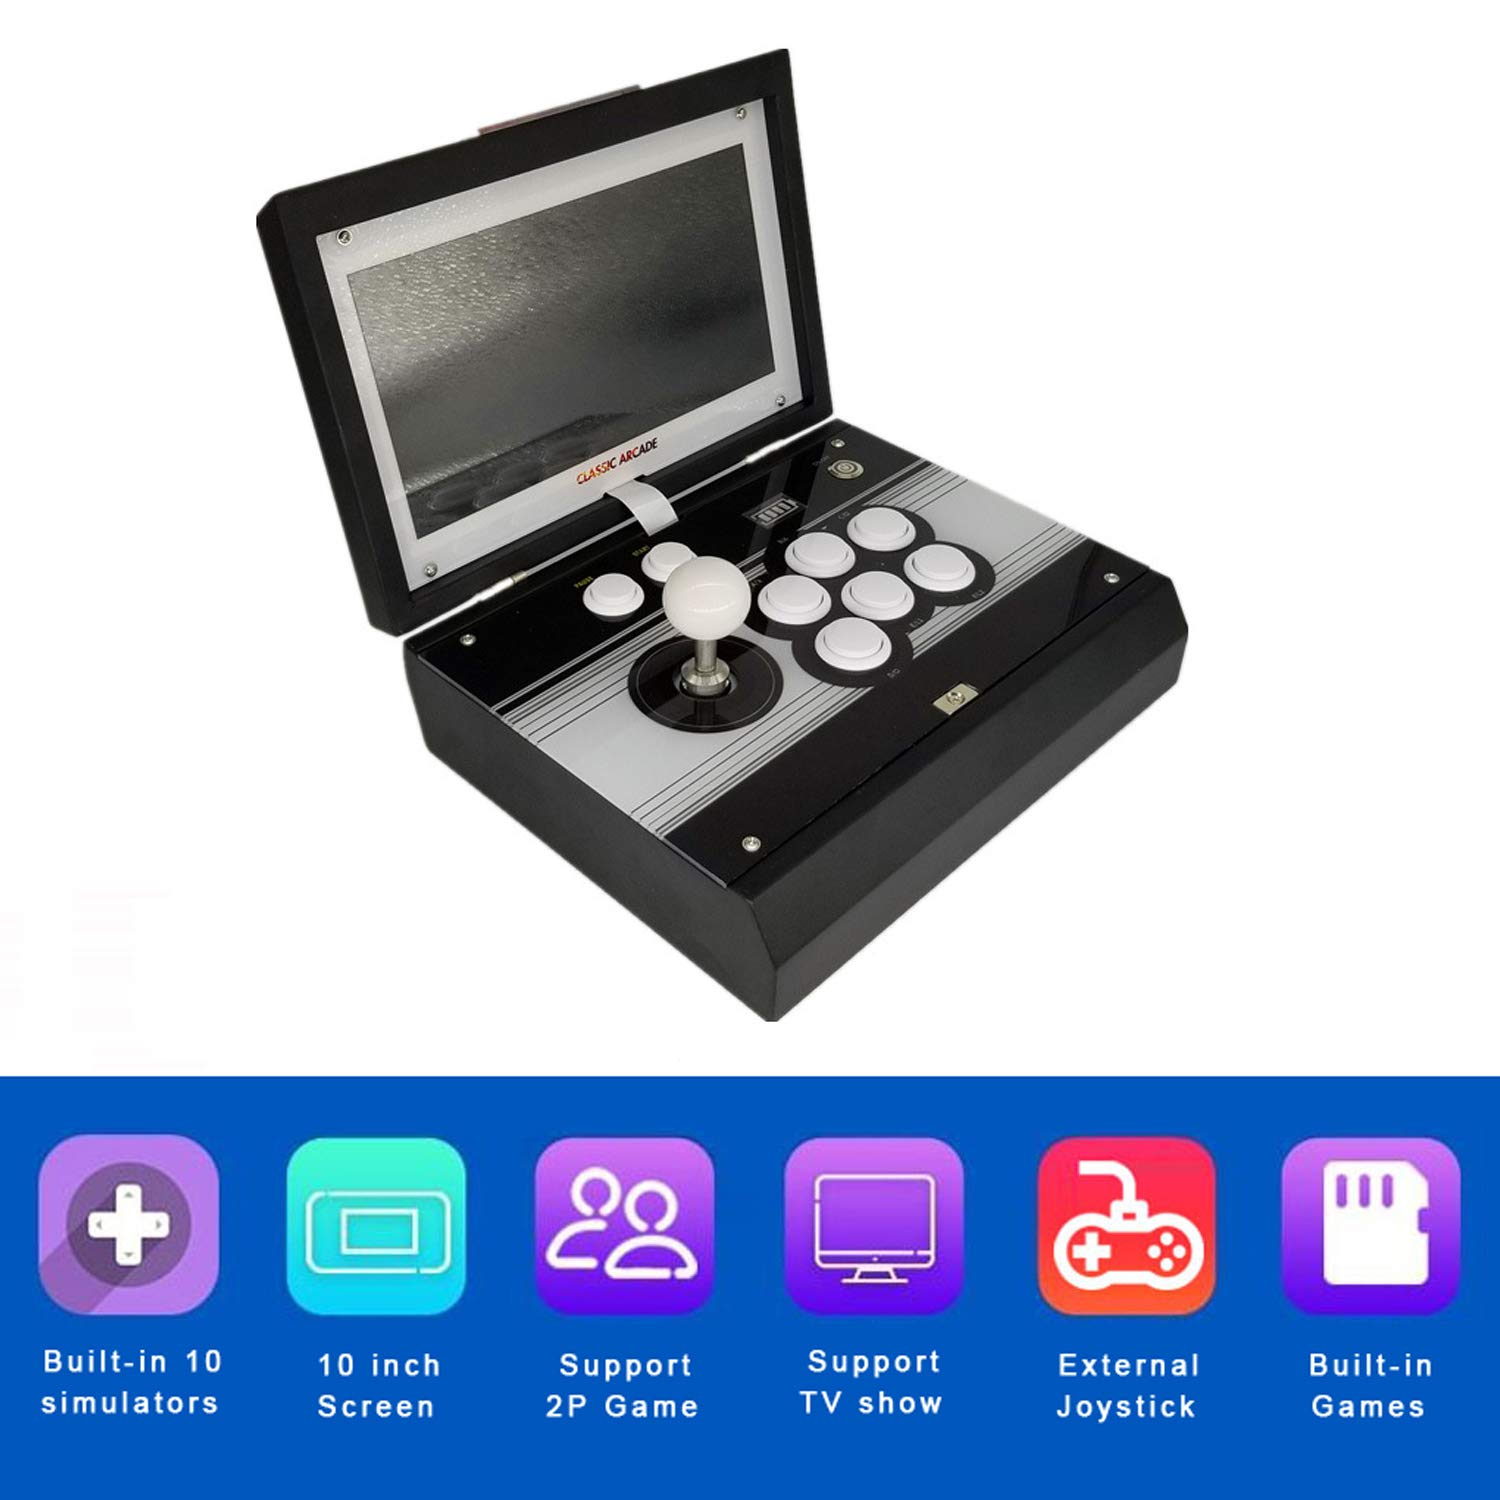 10.1 inch Portable Metal Casing Pandora 9 Arcade Video Game Console 1500 in 1 Retro Games Arcade 1280x720P HD Home Flip Single Player Game Machine